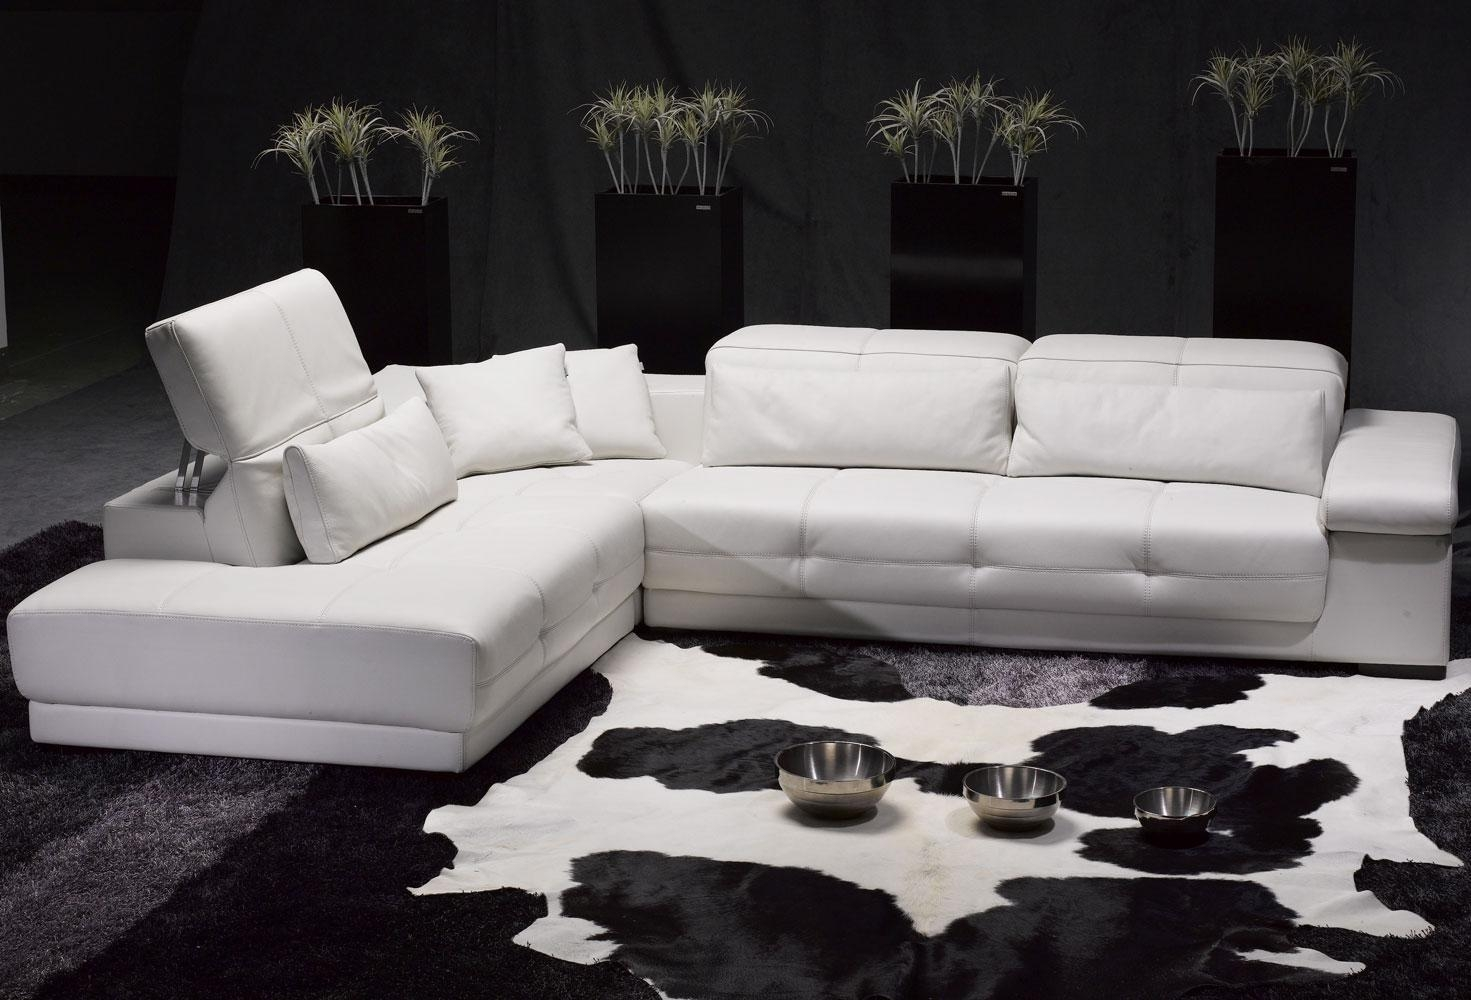 Vig Furniture Black And White Bonded Leather Sofa Set - S3Net inside Black and White Leather Sofas